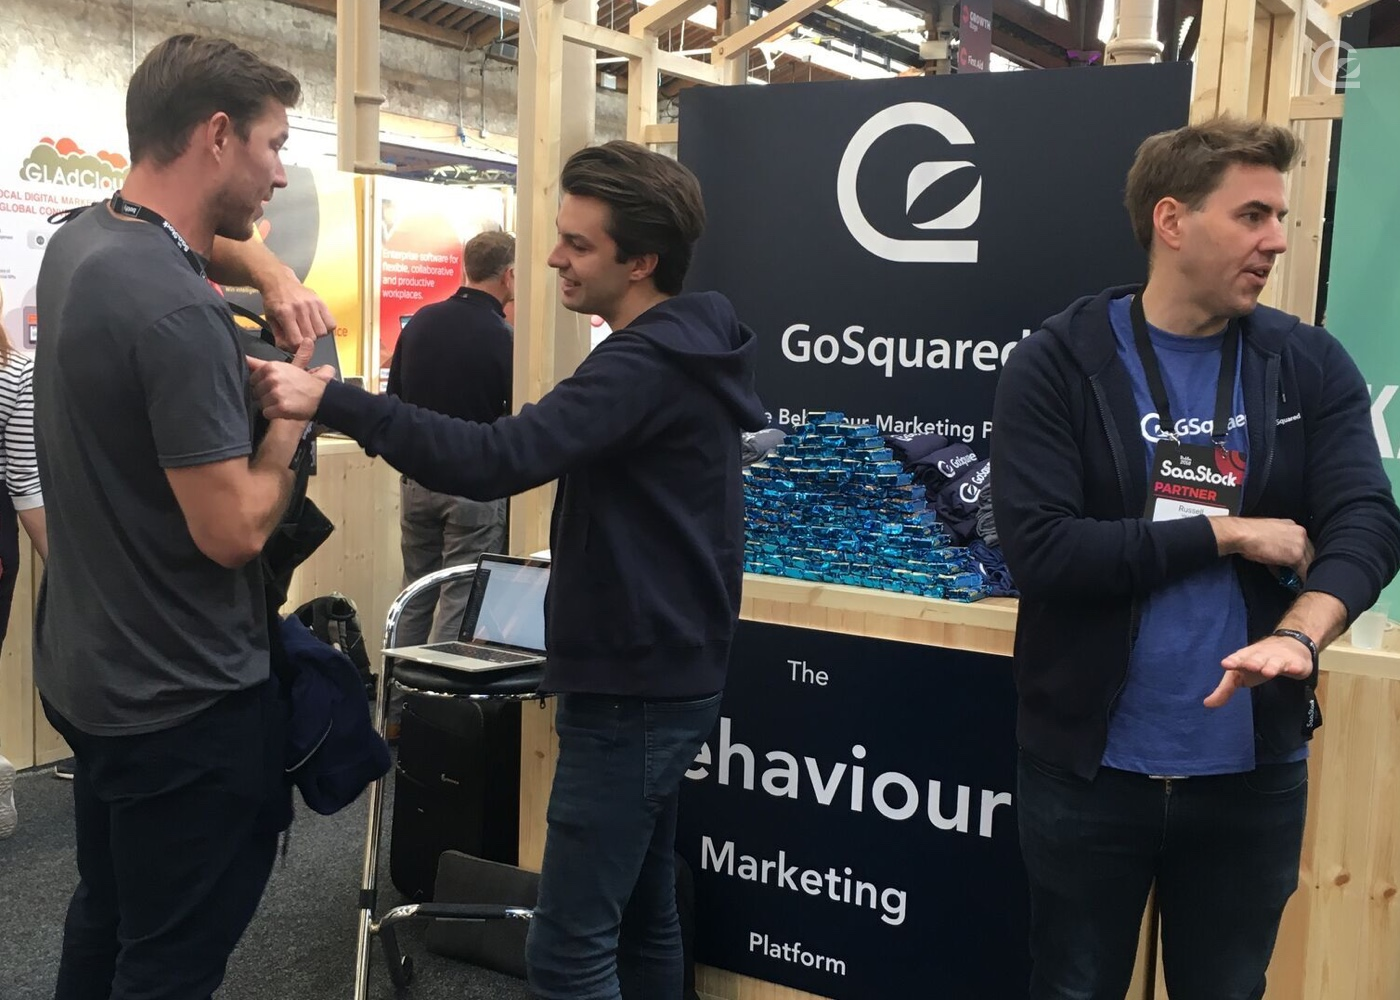 James and Russell at the GoSquared stand with rice Krispy squares talking to another vendor